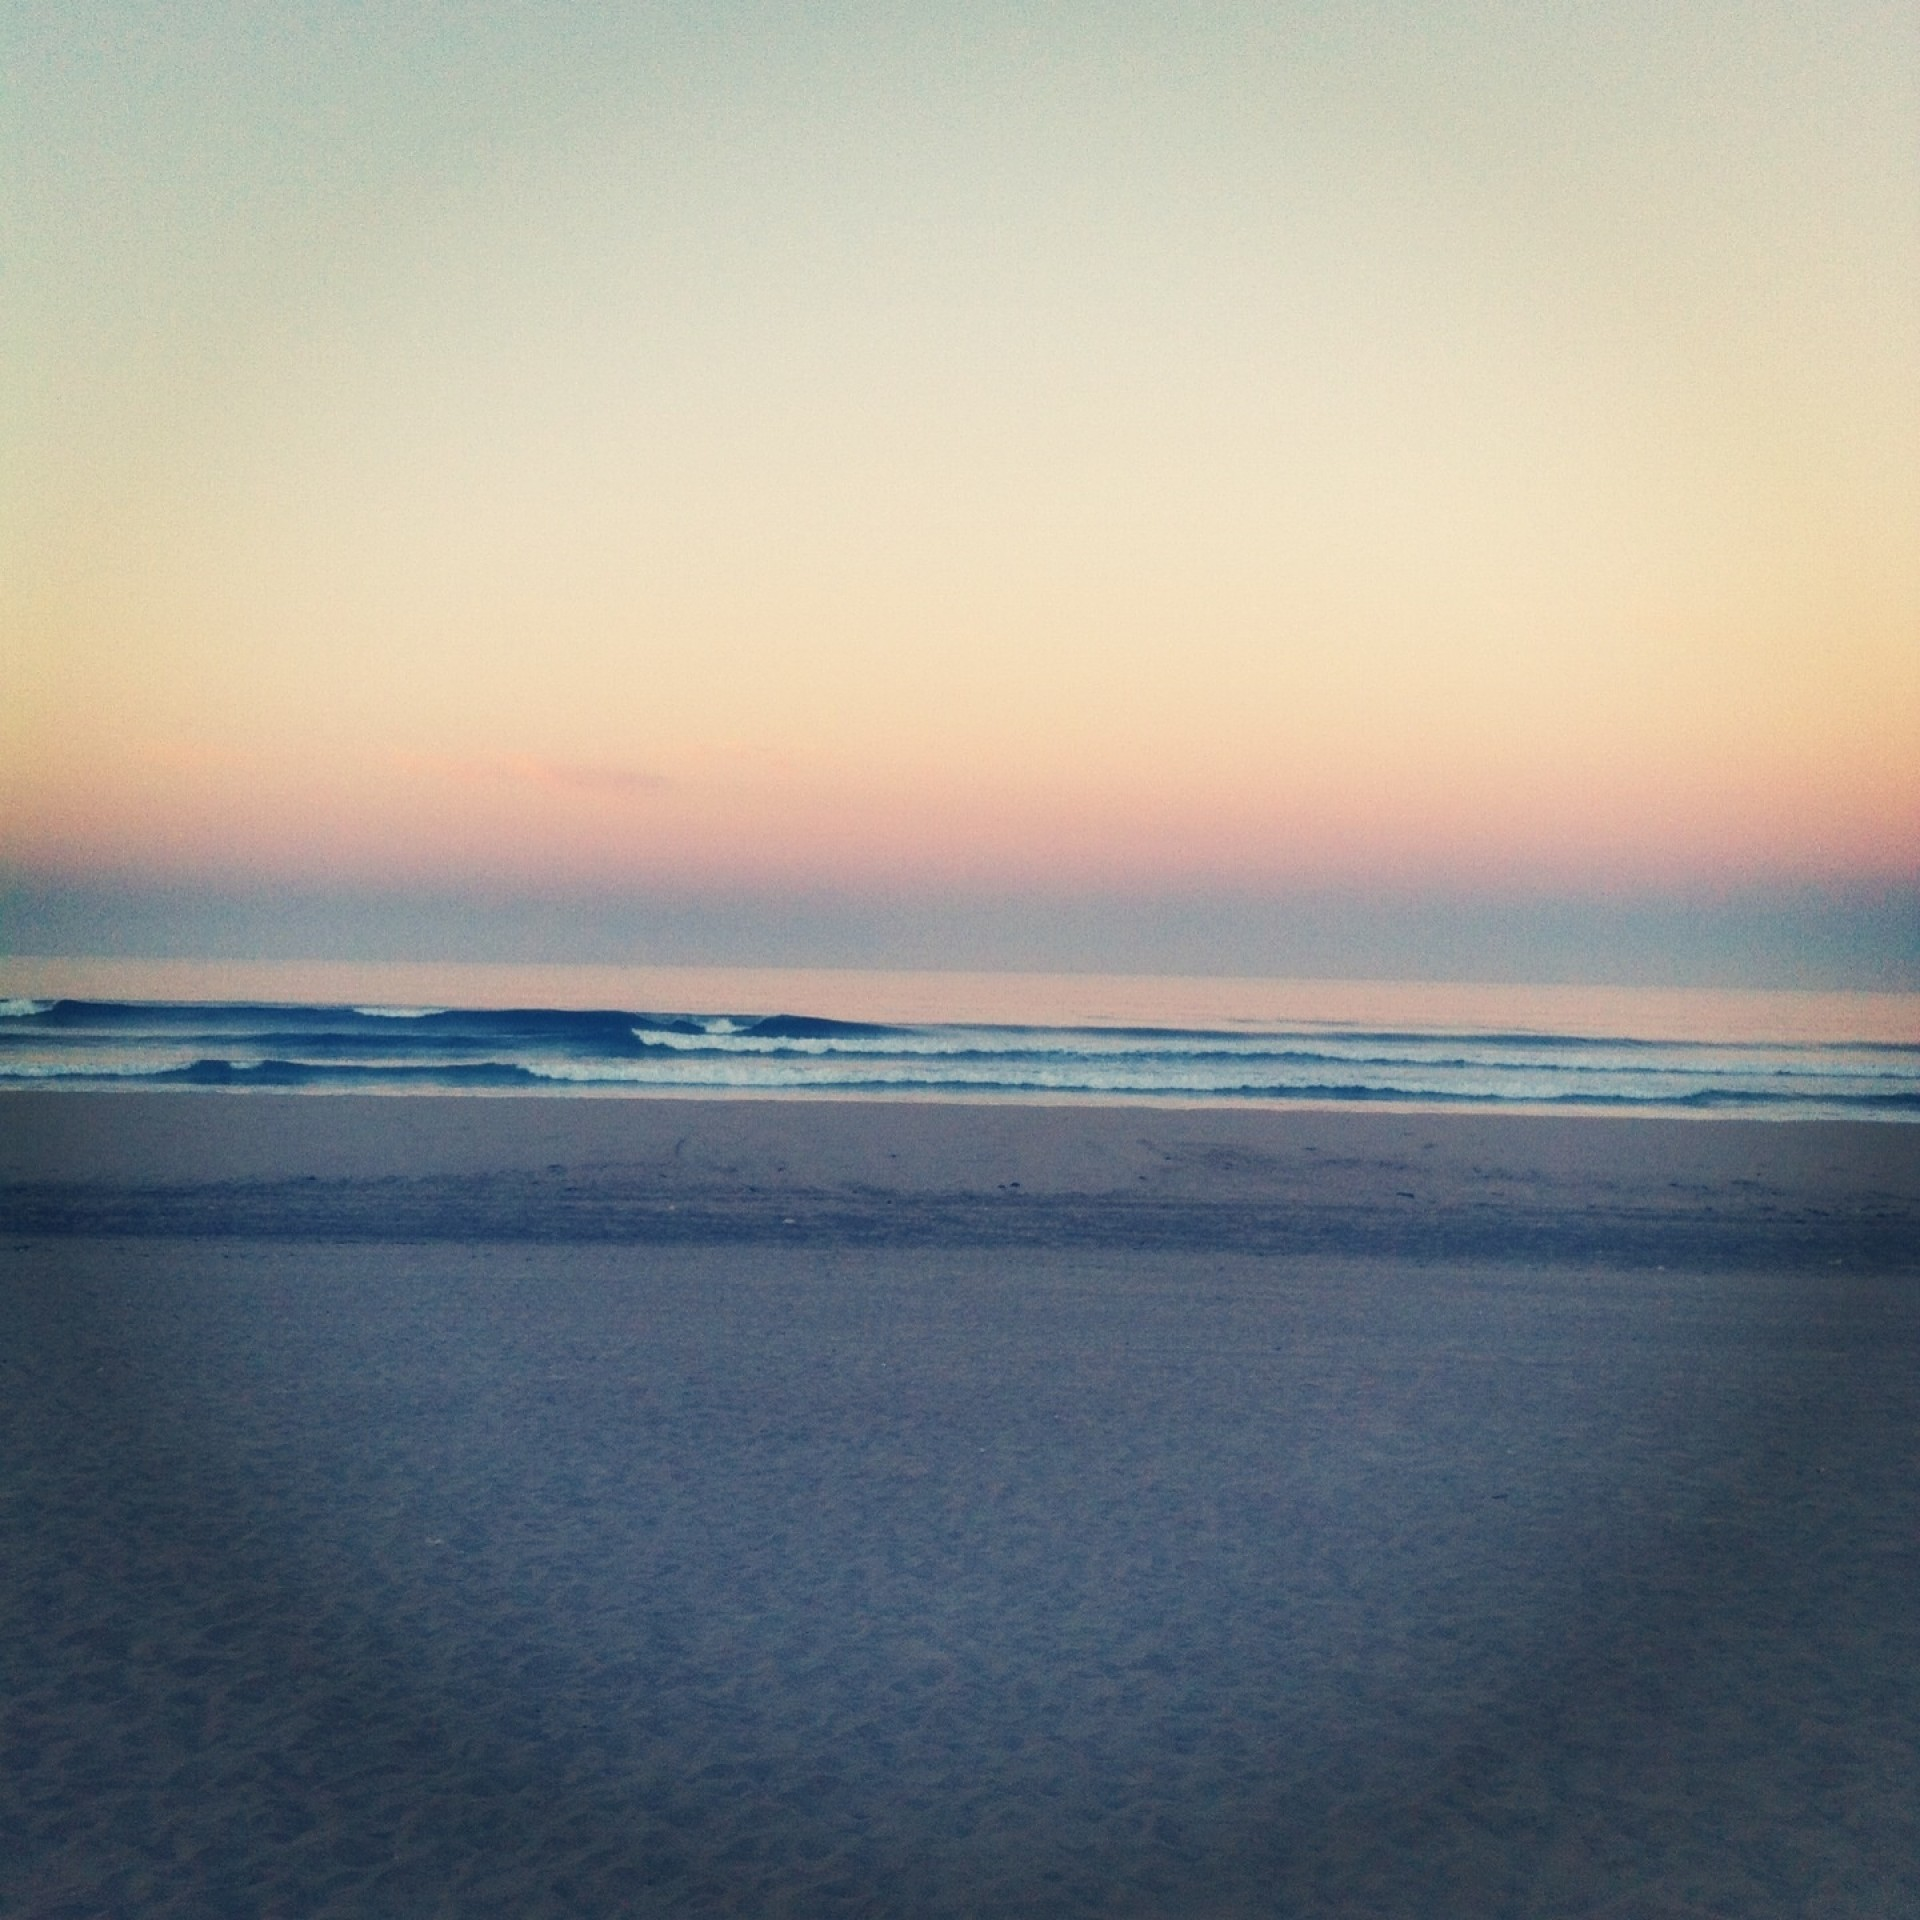 Mendo de Dornellas's photo of Costa da Caparica